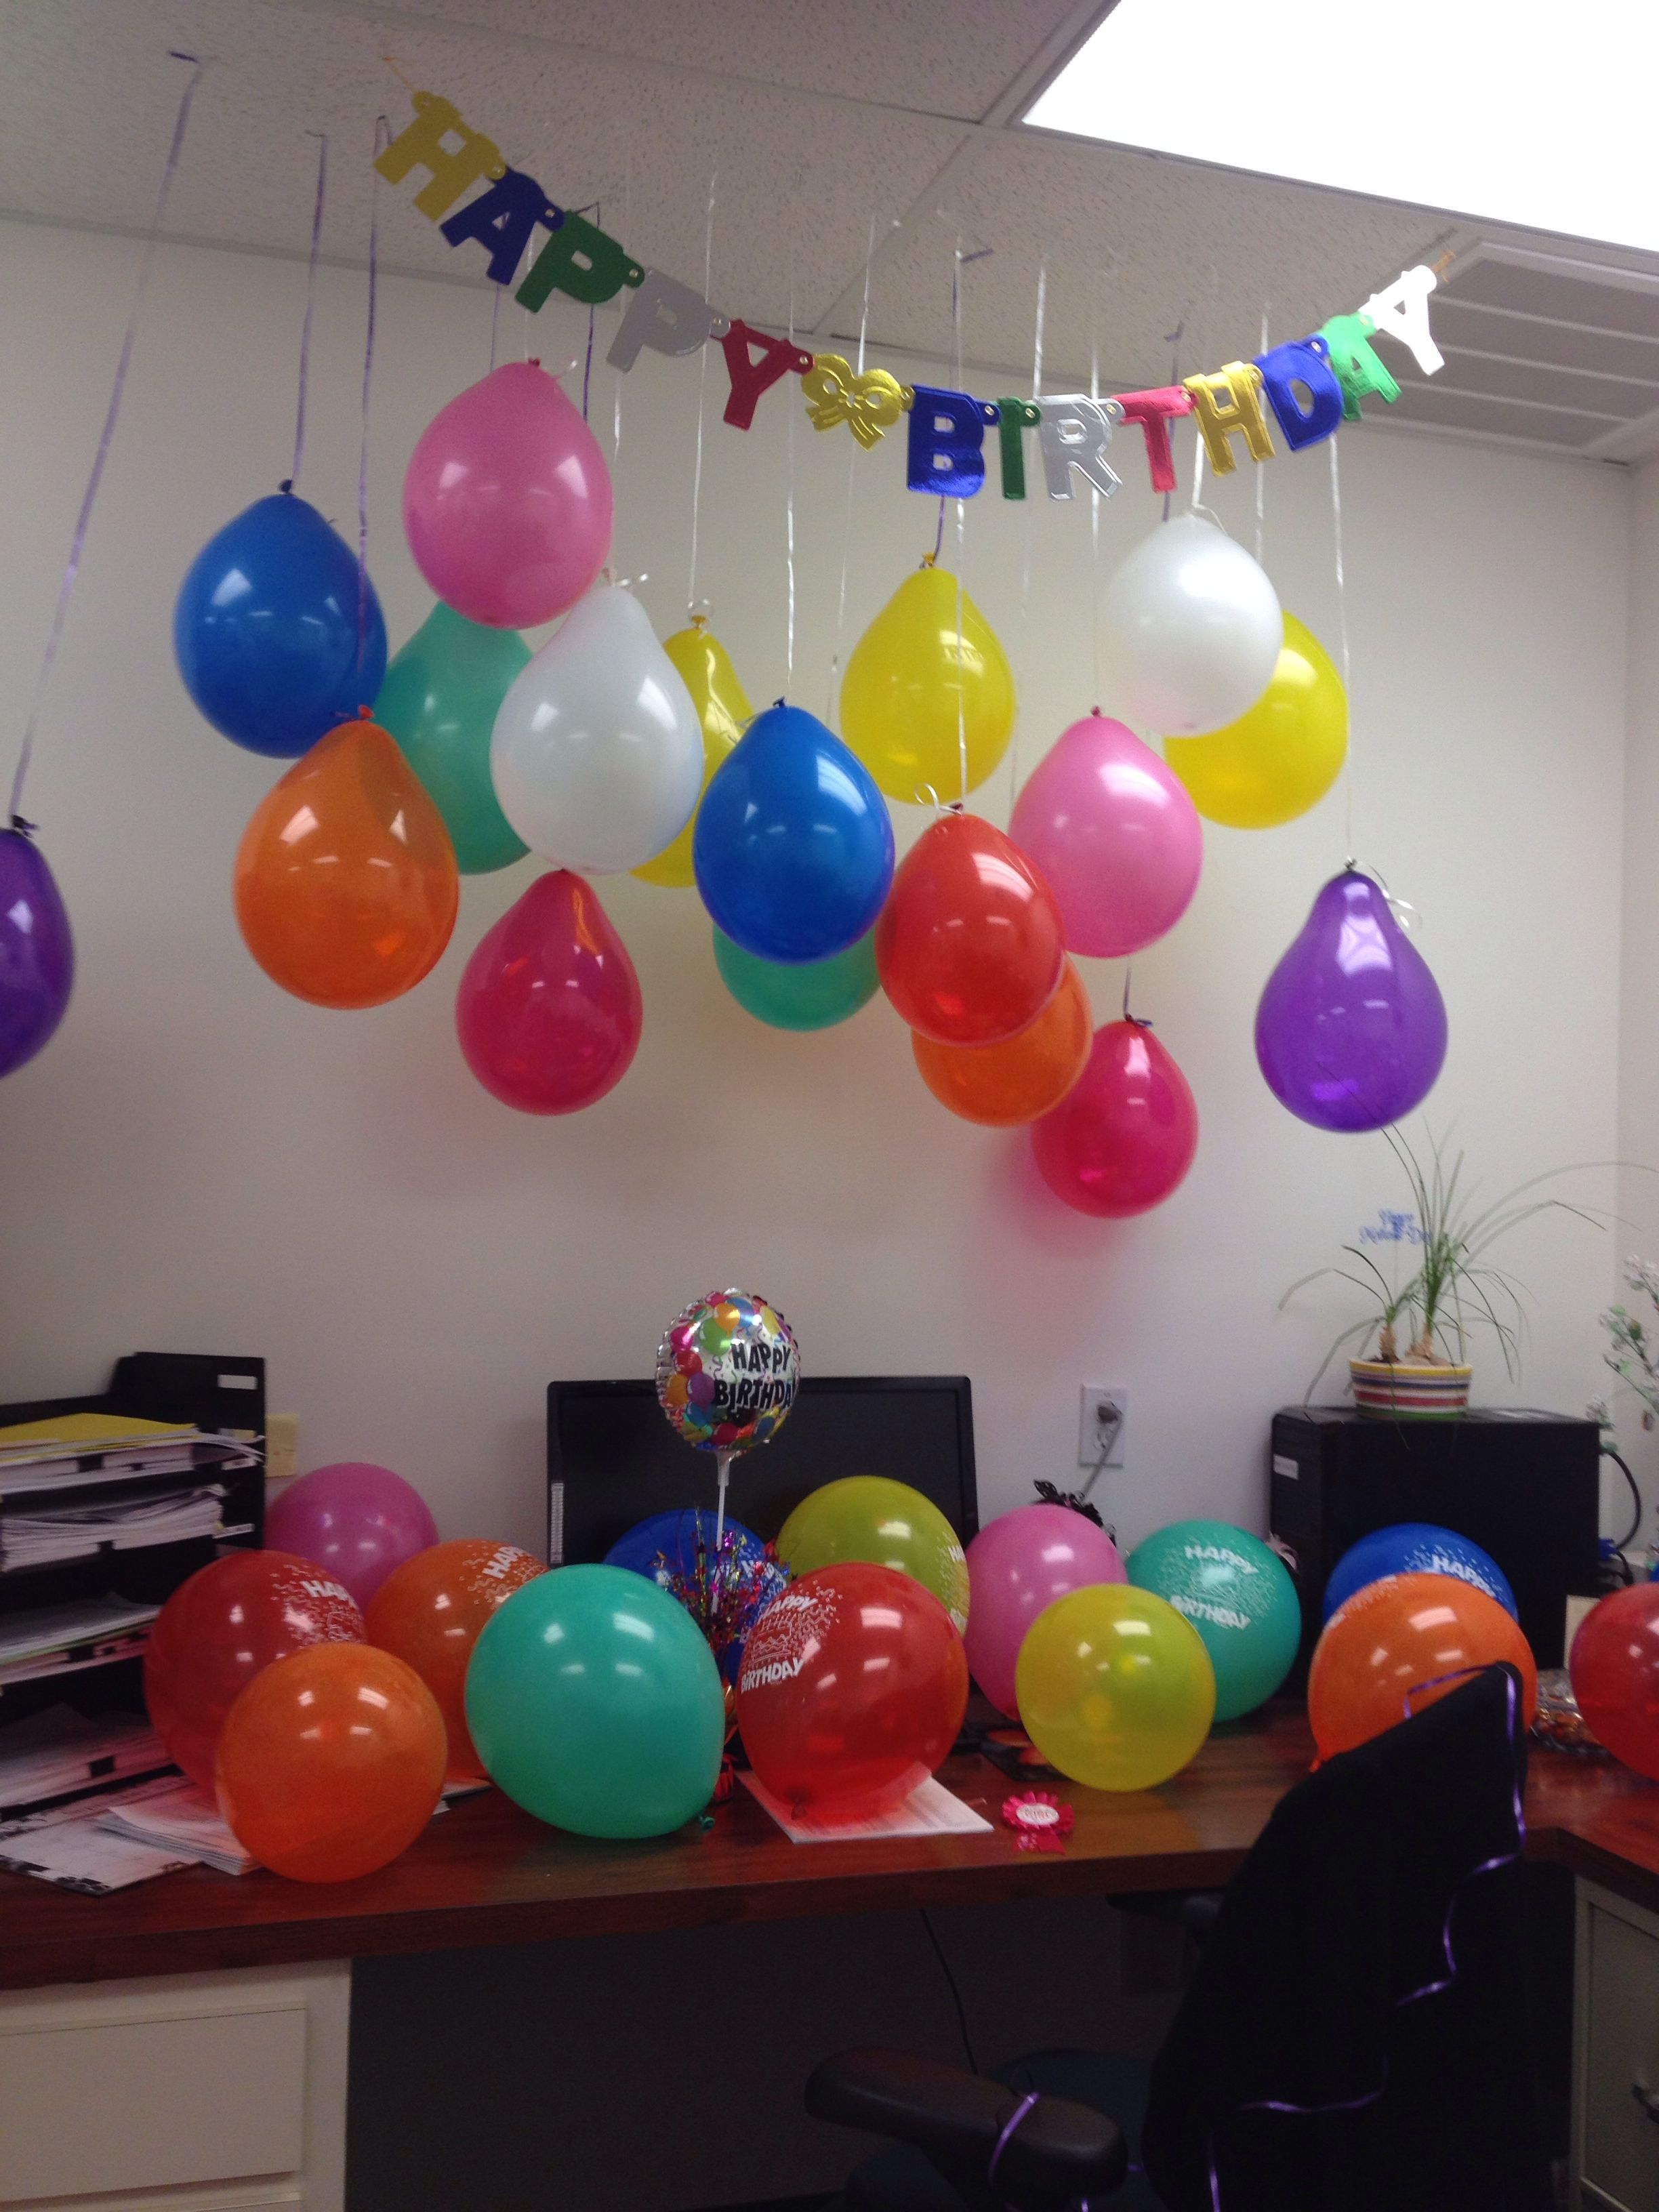 Best Birthday Decoration For An Office Creativity Art This Month